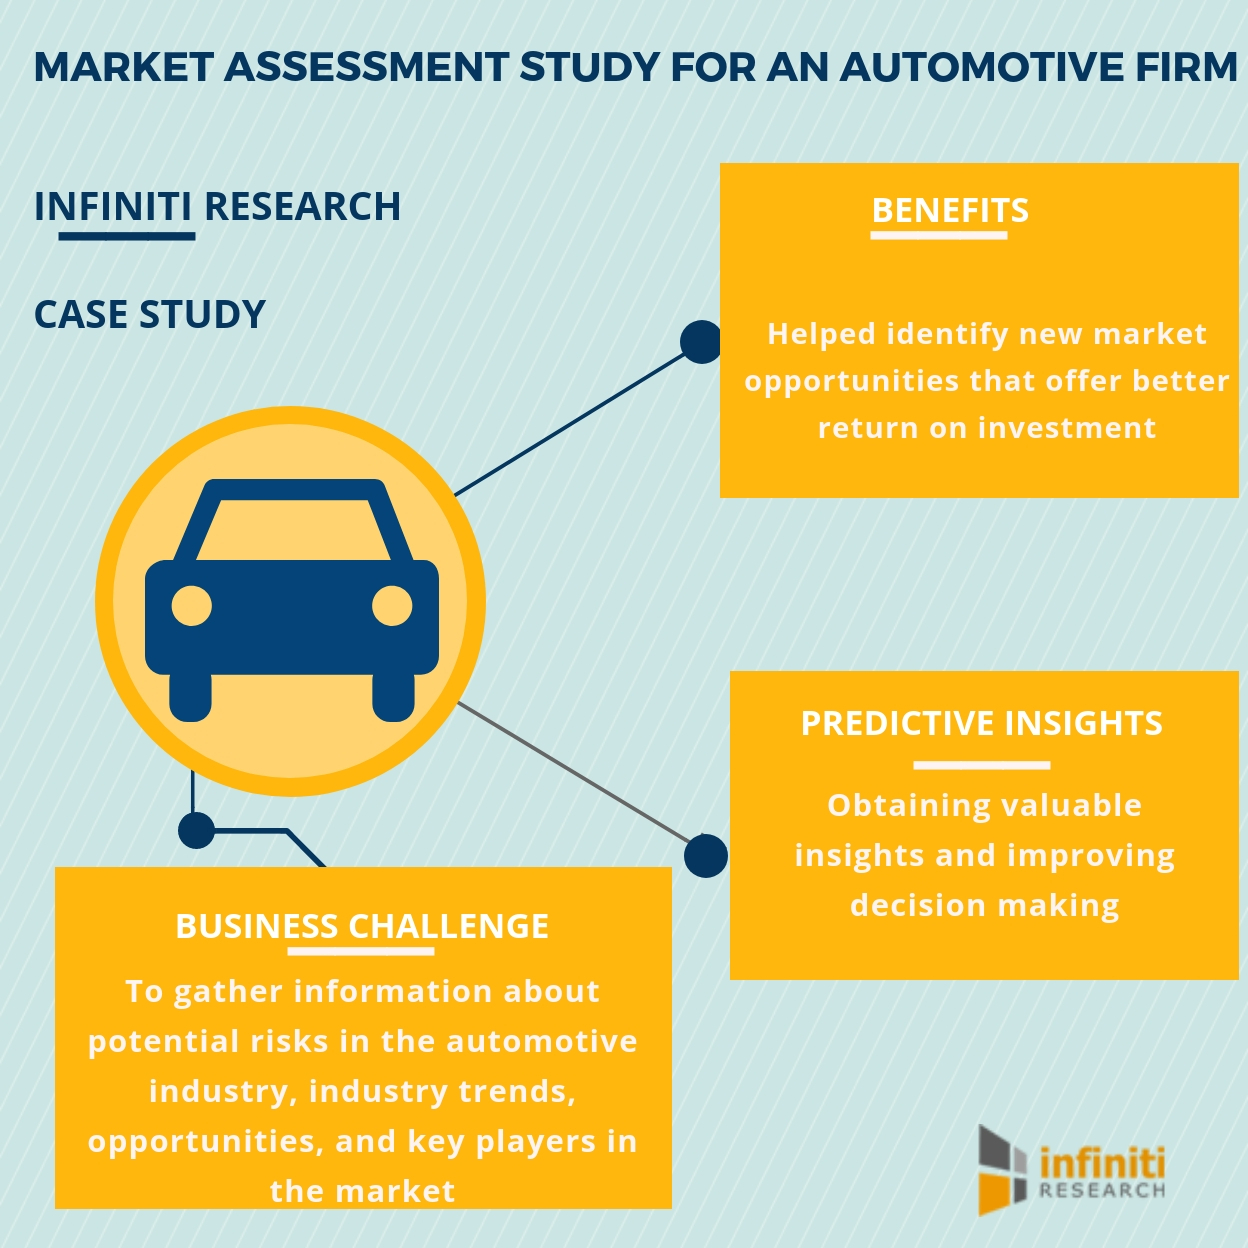 Increasing Market Share By 5 In A Year For An Automotive Player Infiniti Research S Latest Market Assessment Study Business Wire